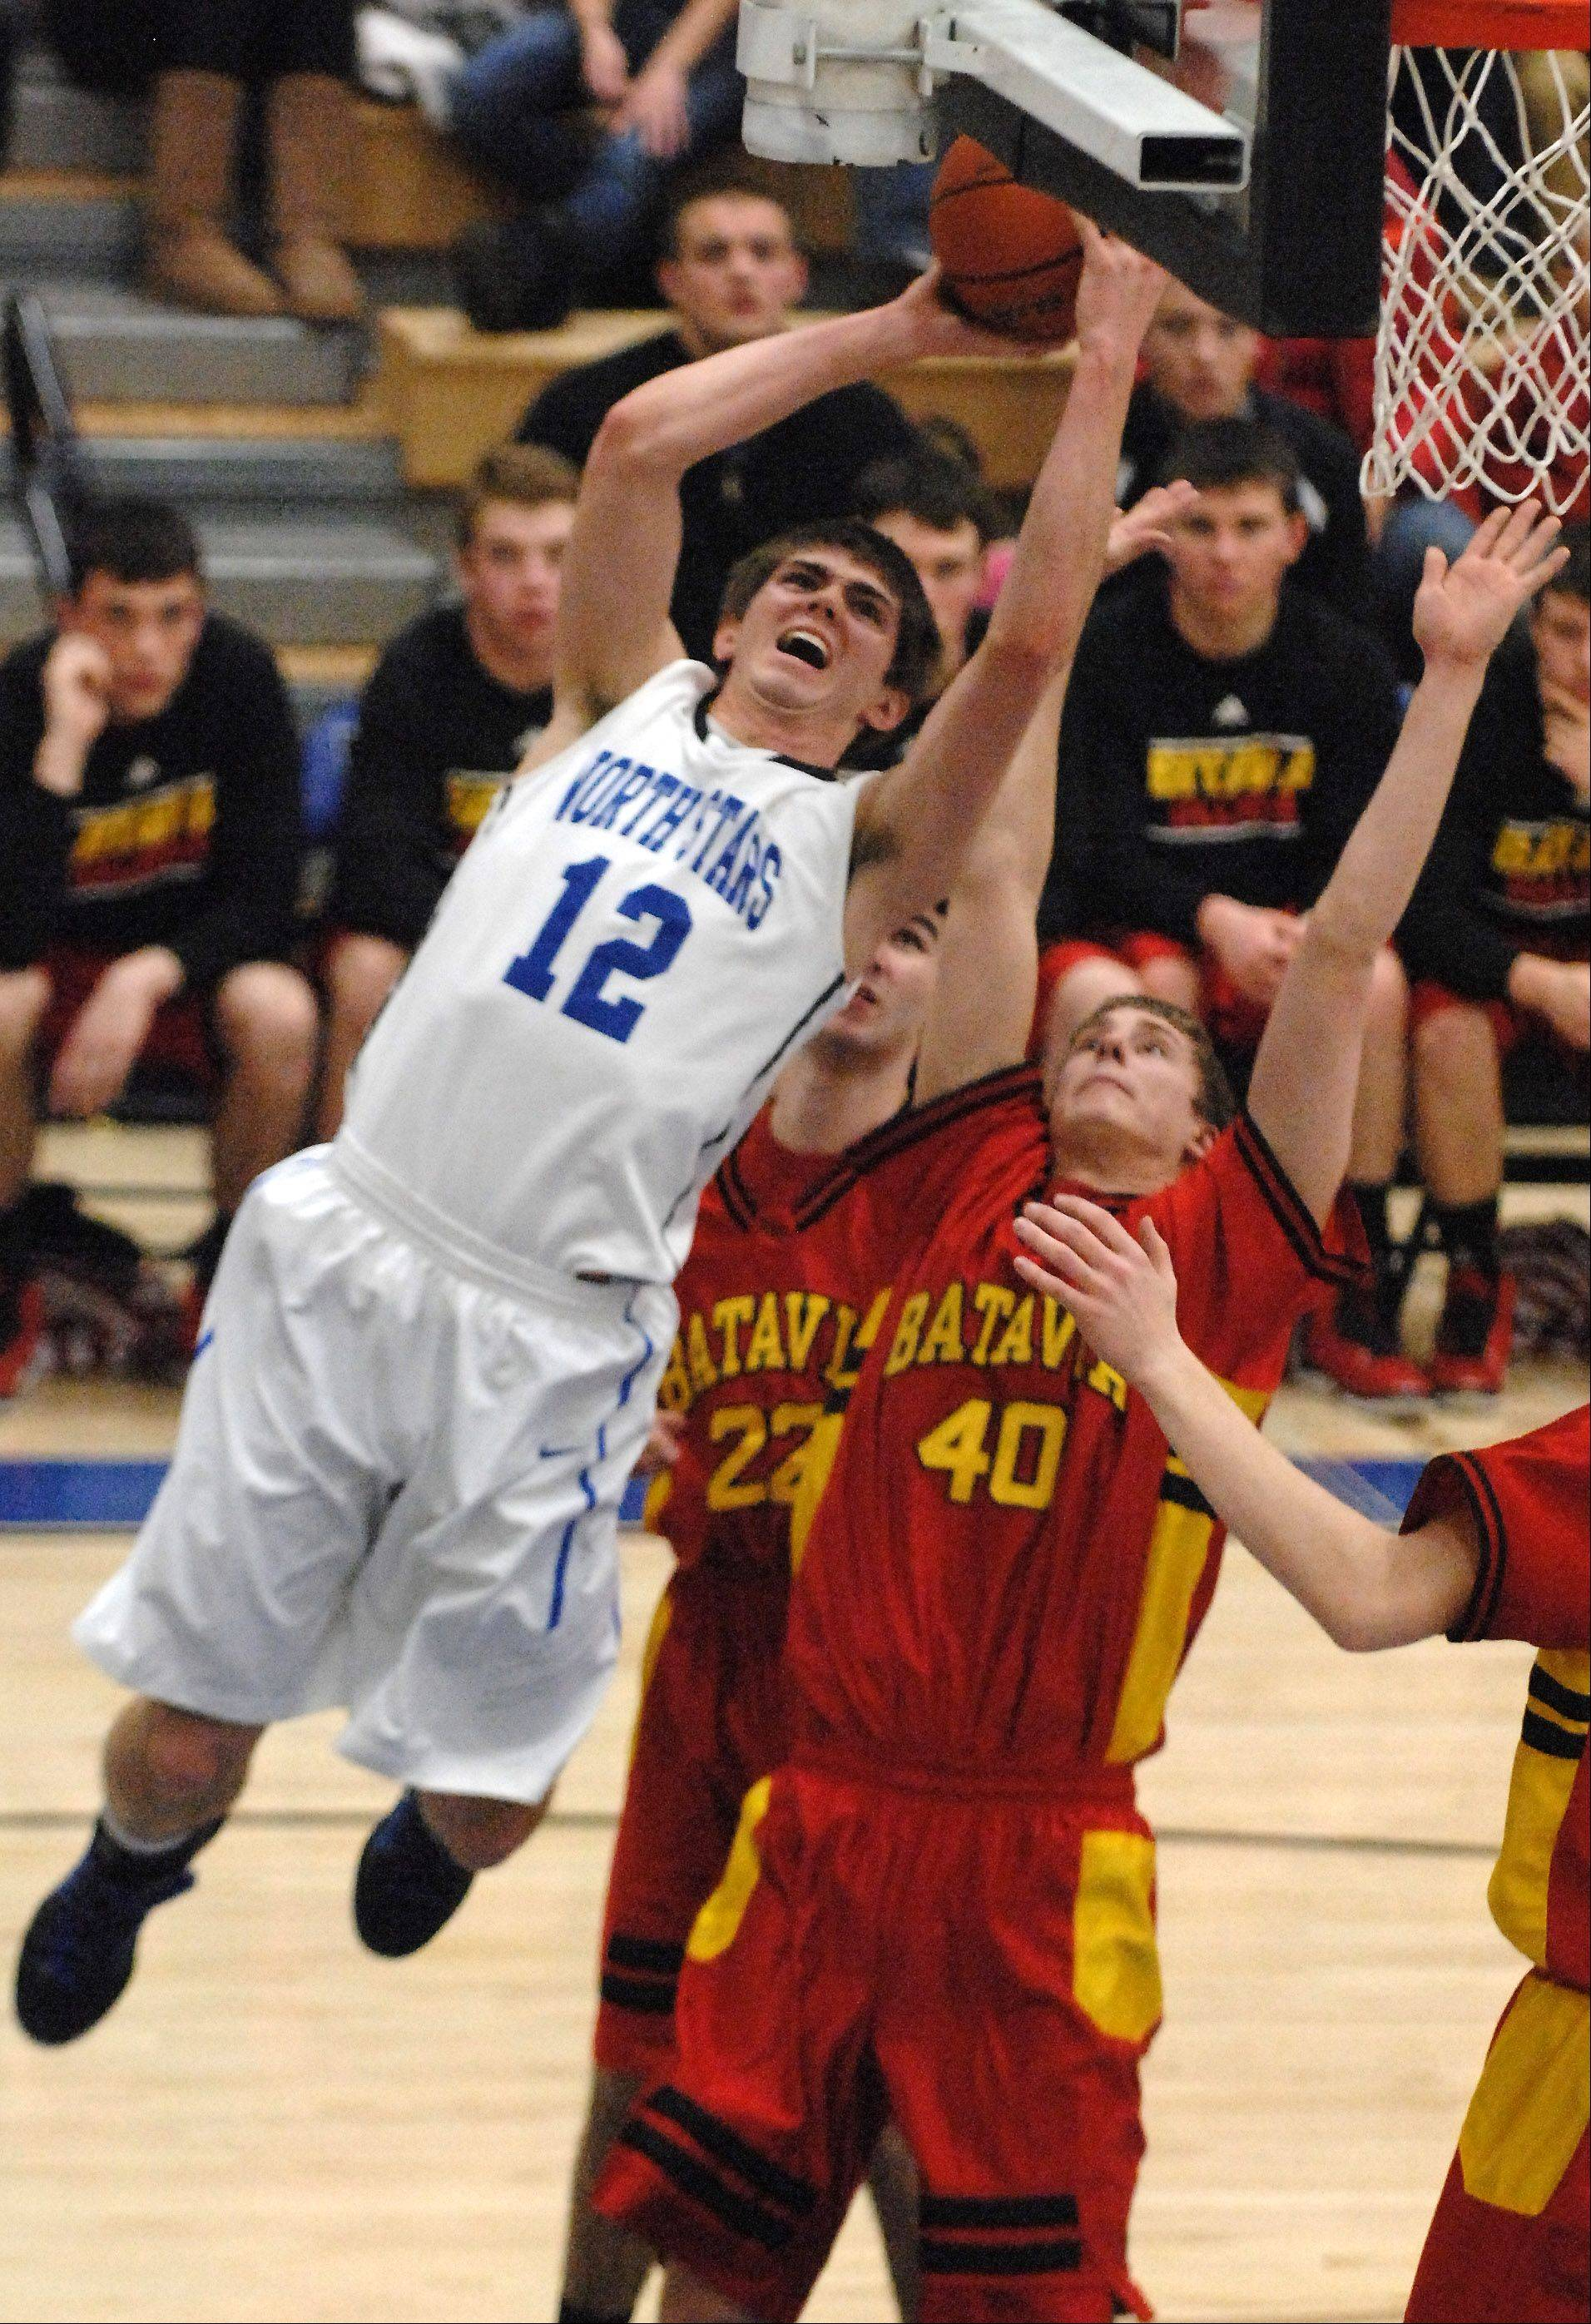 St. Charles North's Quinten Payne drives to the basket against Batavia during Friday's game in St. Charles.